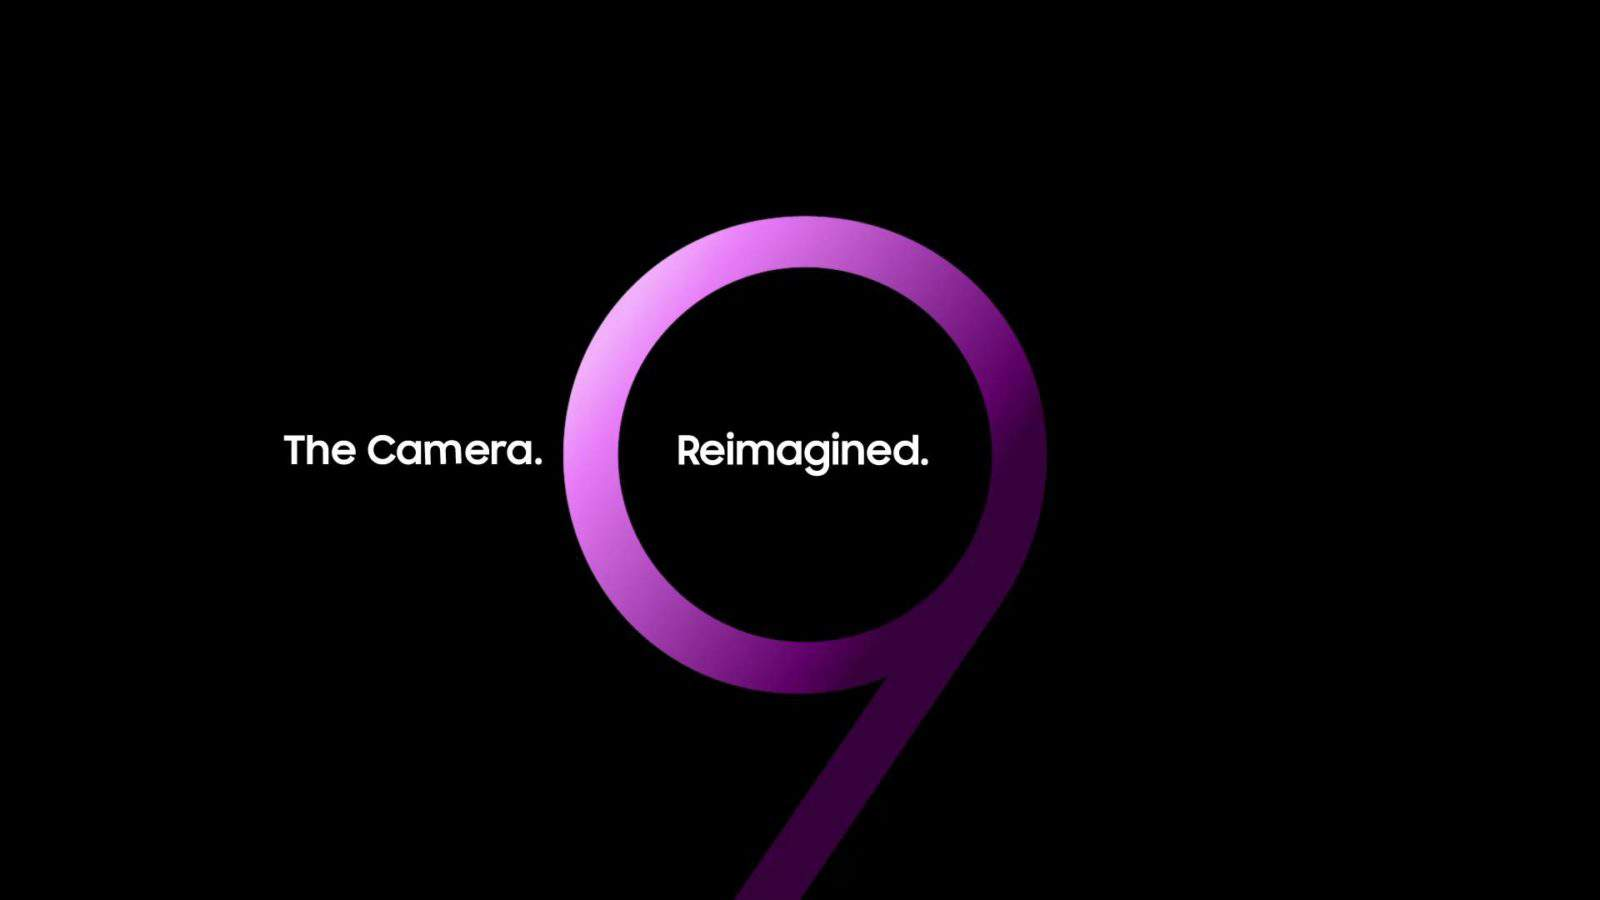 Galaxy s9 s9 plus teaser page video appear on flipkart galaxy s9 s9 plus teaser page video appear on flipkart ccuart Image collections